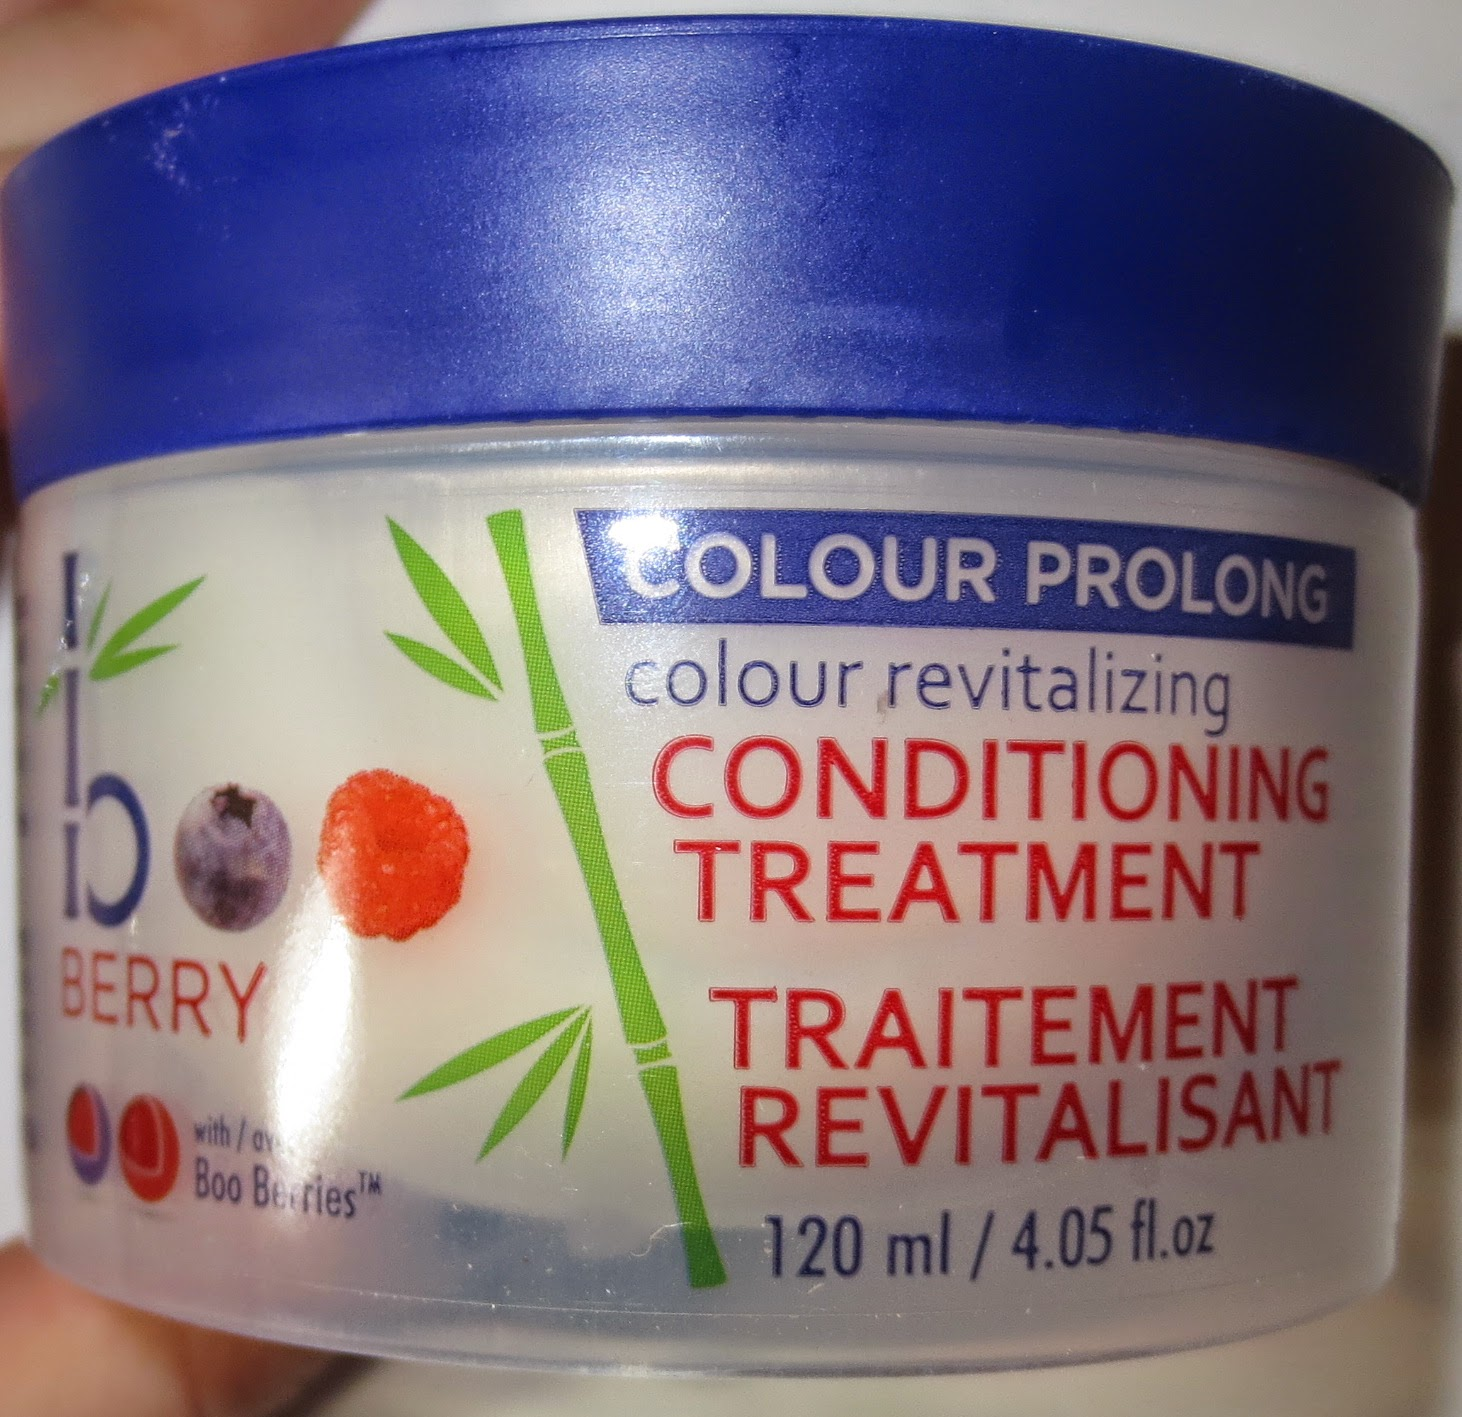 Boo Berry Colour Revitalizing Conditioning Treatment